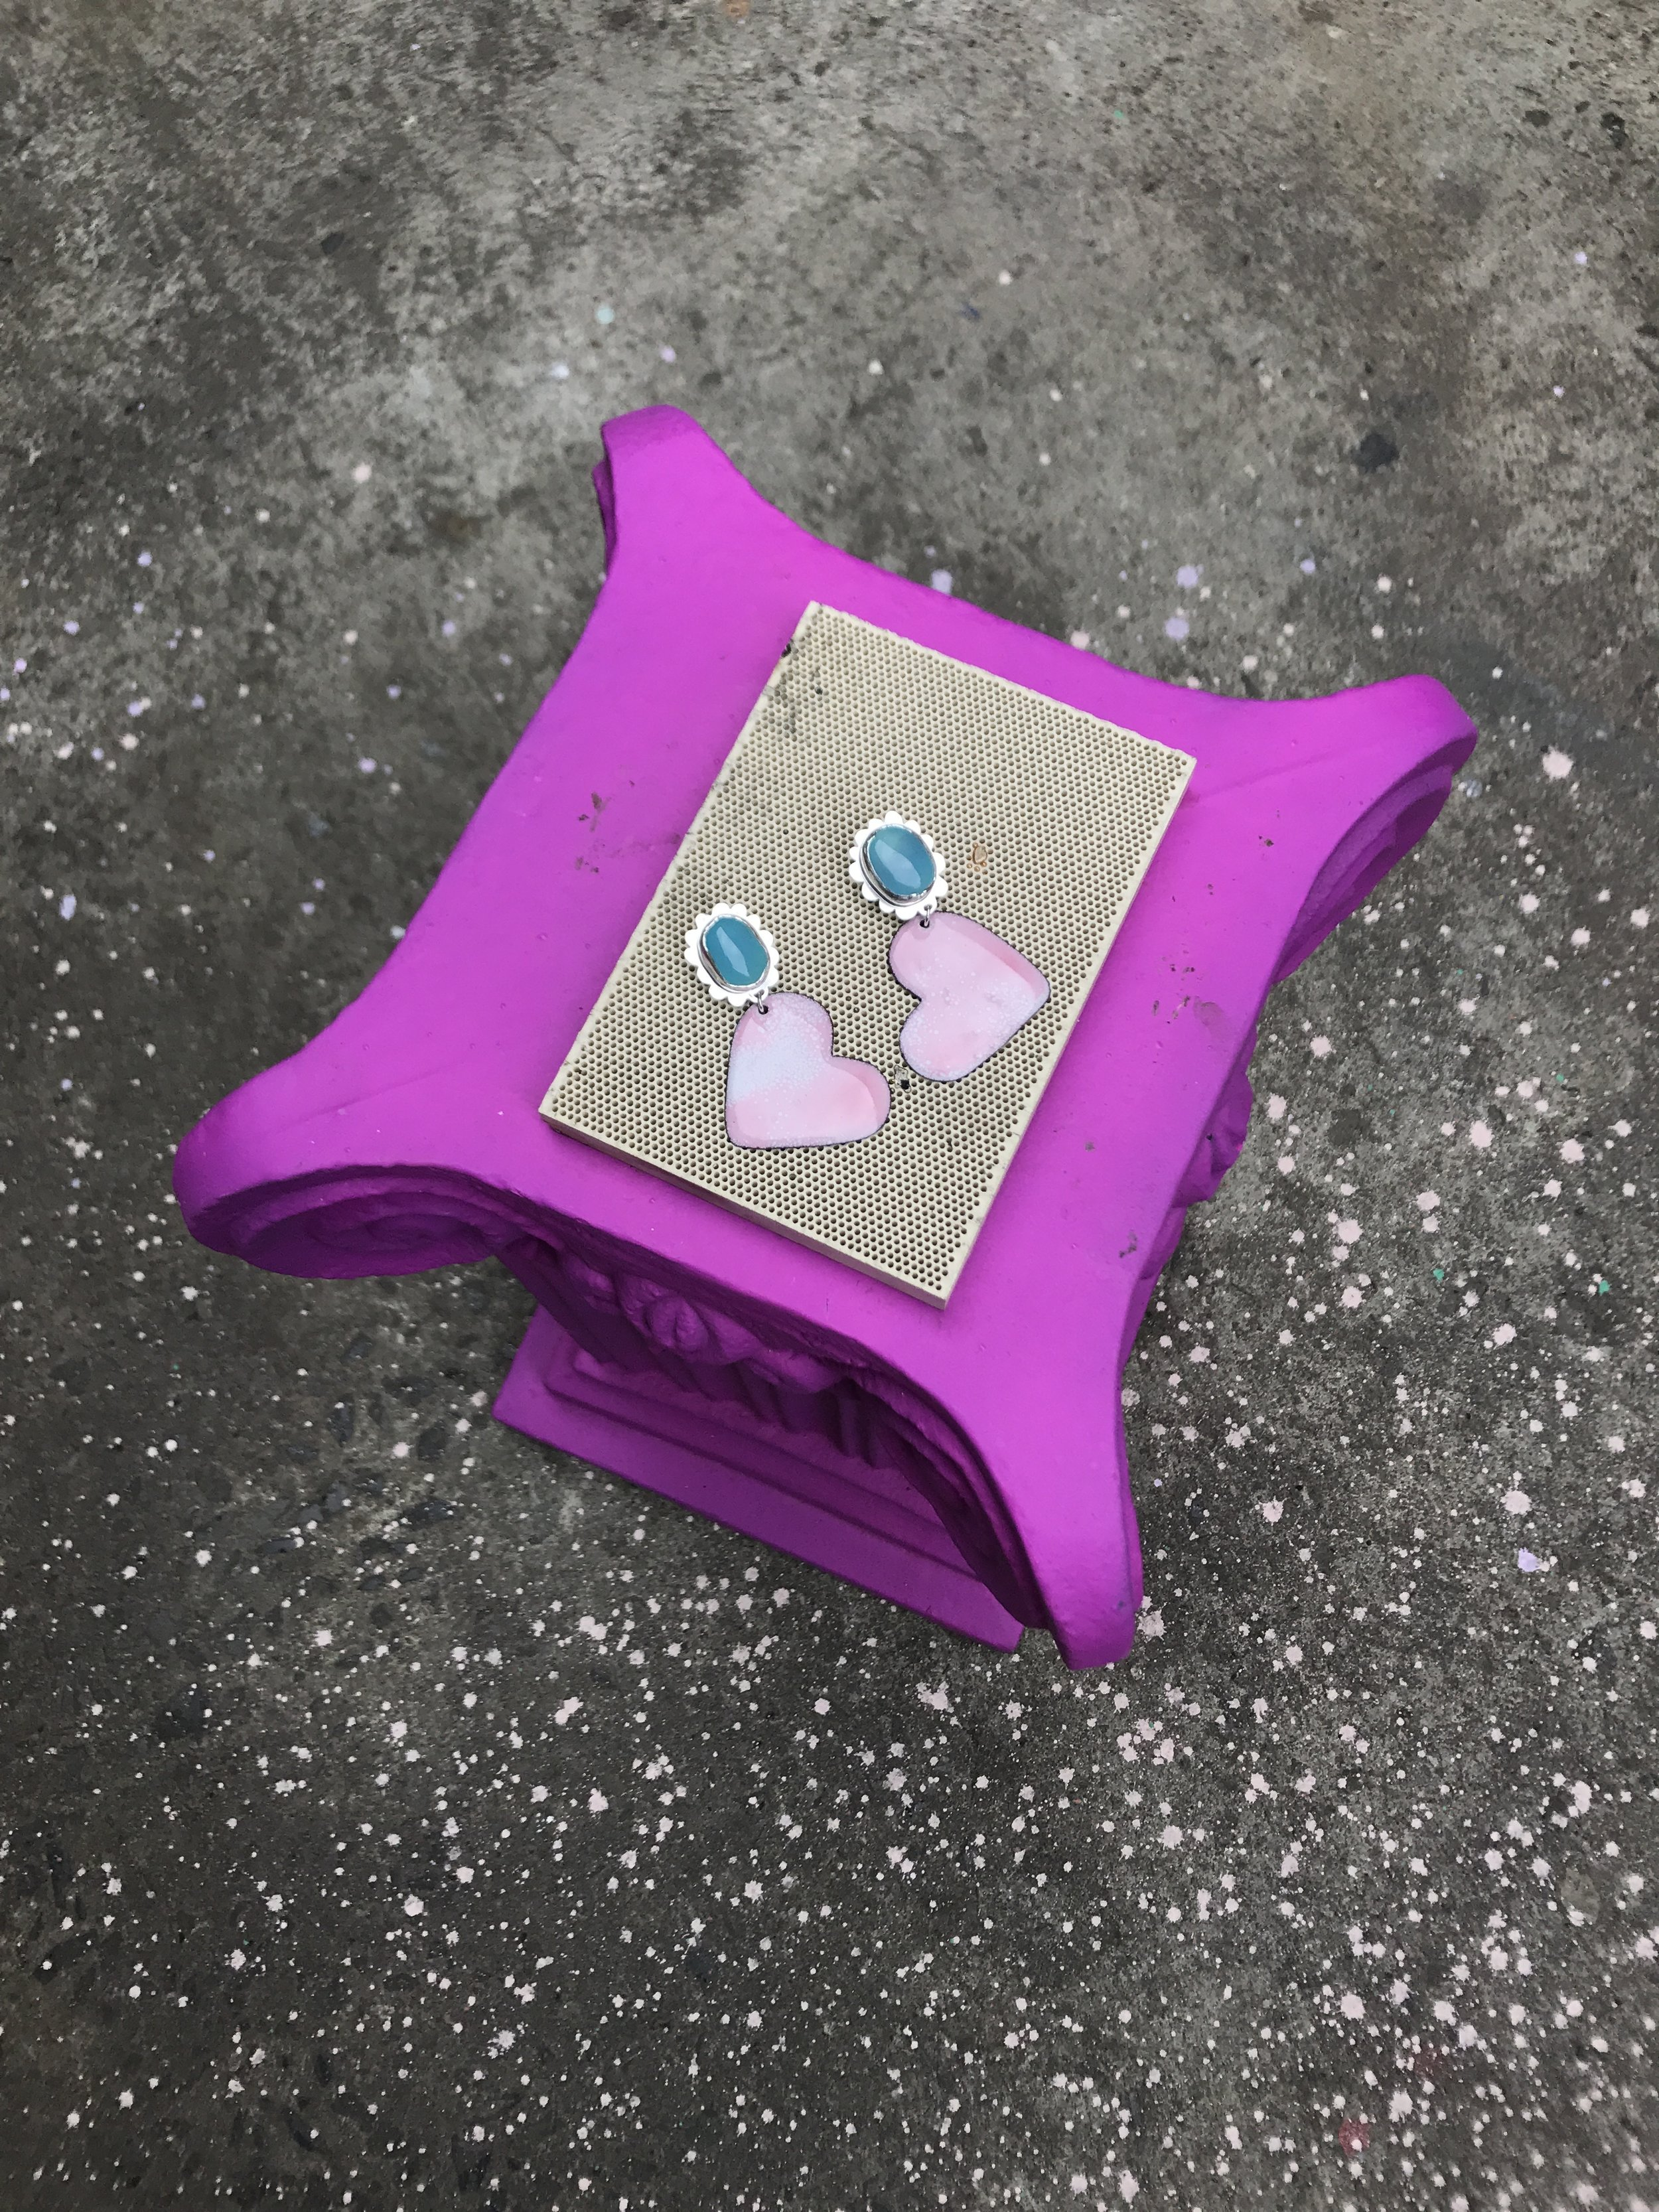 ada-hodgson-contemporary-australian-jewellery-designer-jeweller-design-handmade-mebourne-made-custom-colourful-enamel-sterling-silver-gold-jewelry-statement-ring-necklace-earrings-ethical-handcrafted